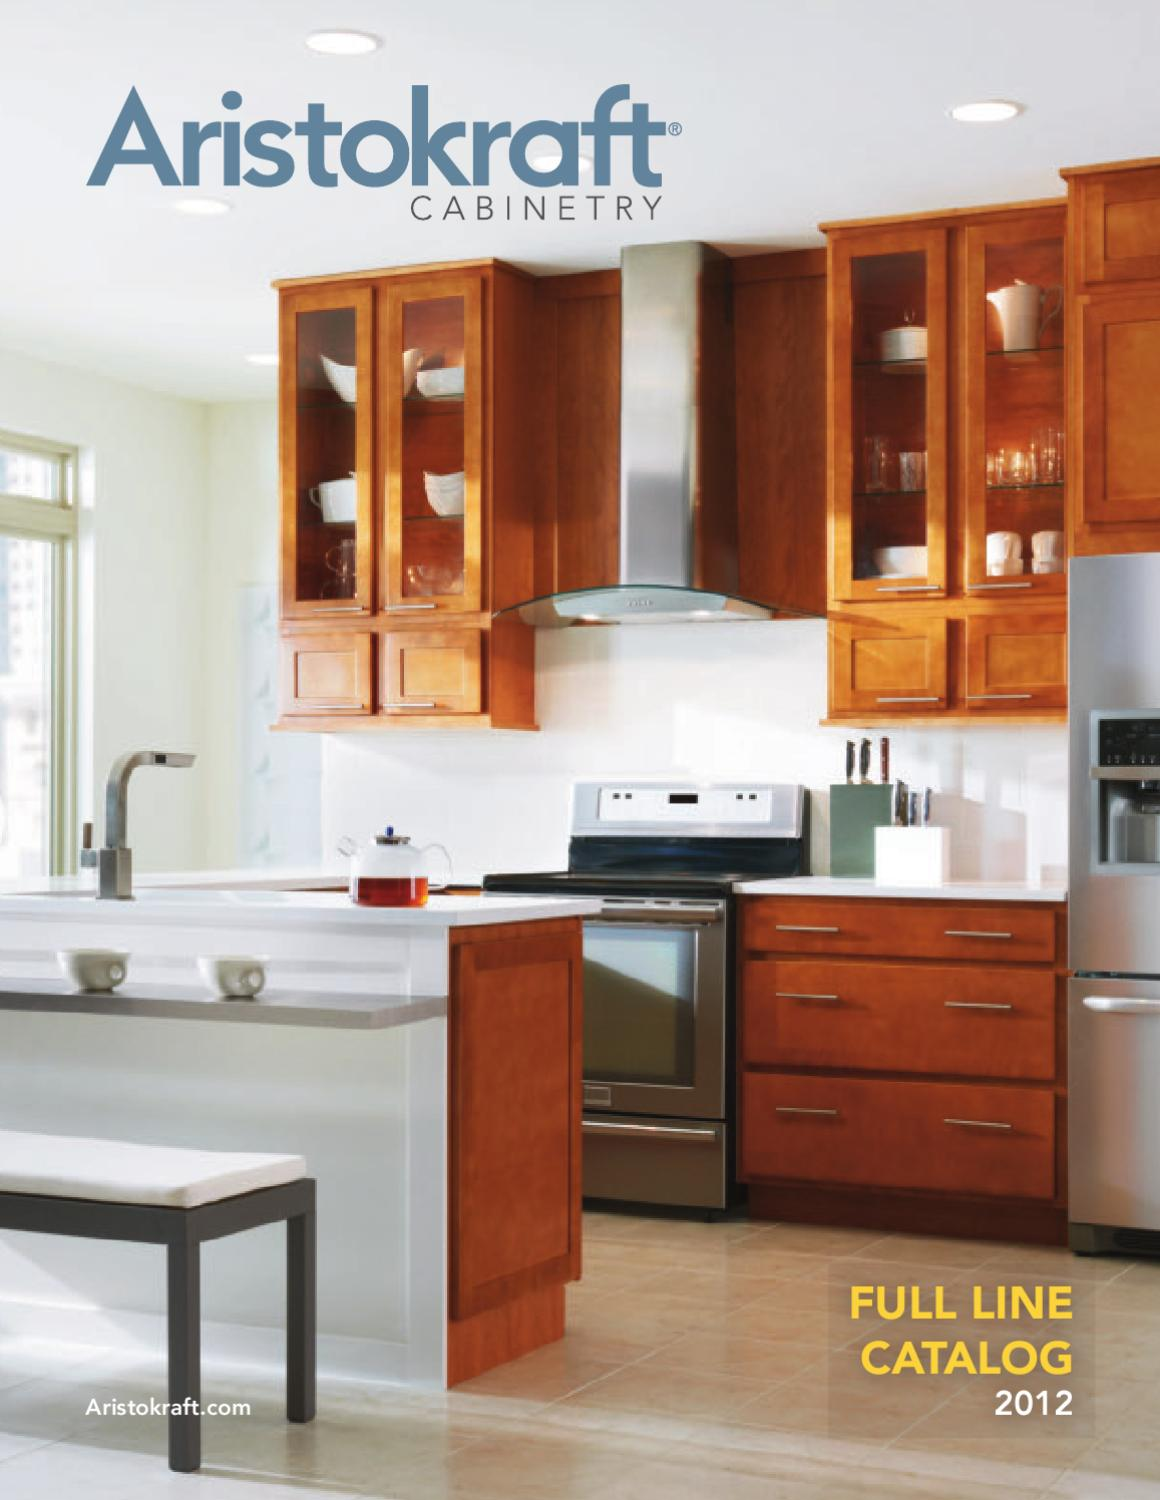 Aristokraft Full Line Cabinetry Brochure By Russell Nadler   Issuu